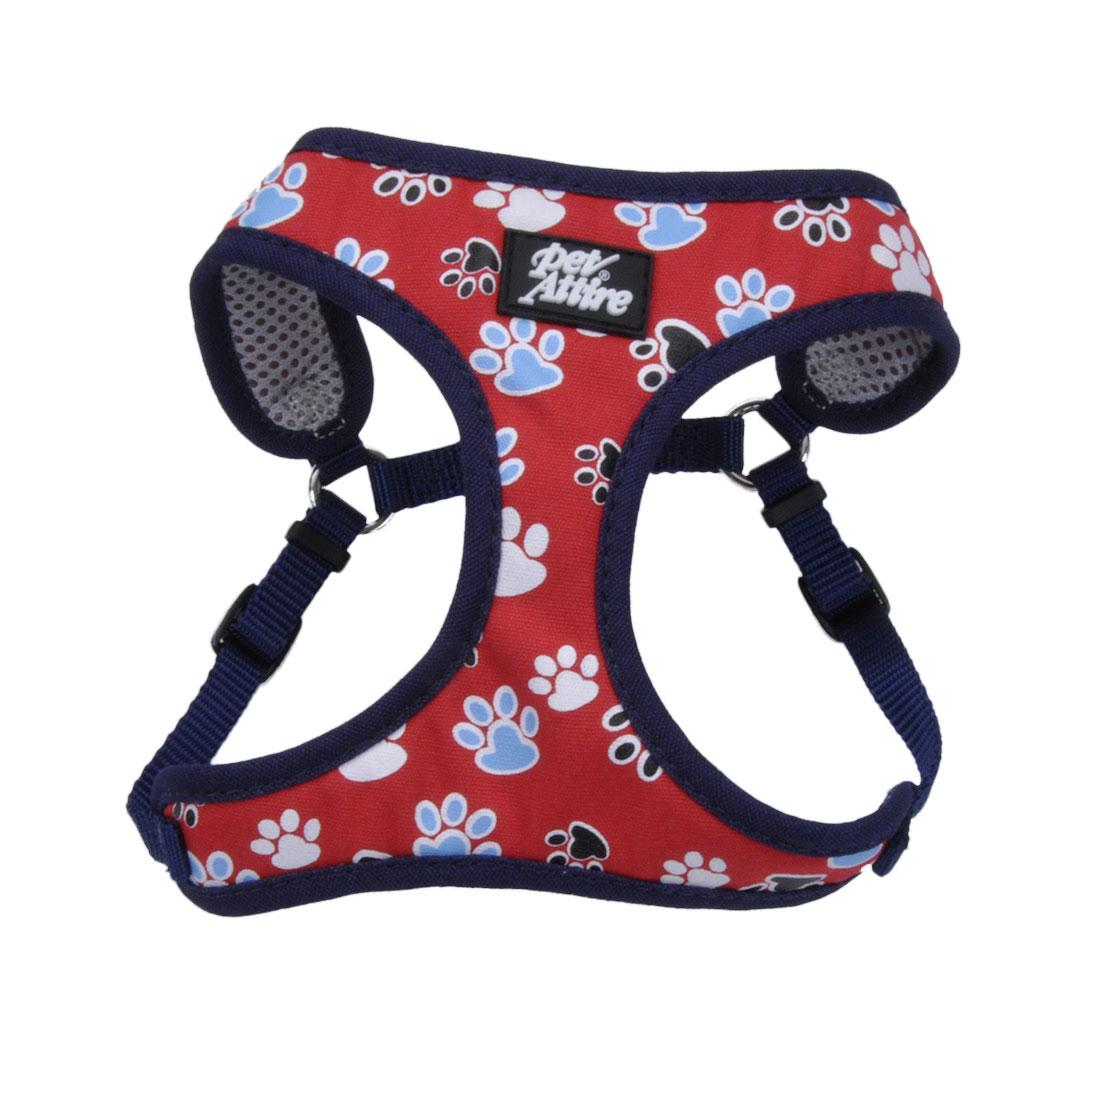 Ribbon Designer Wrap Adjustable Dog Harness, Red with Paws, 3/8-in x 14-16-in